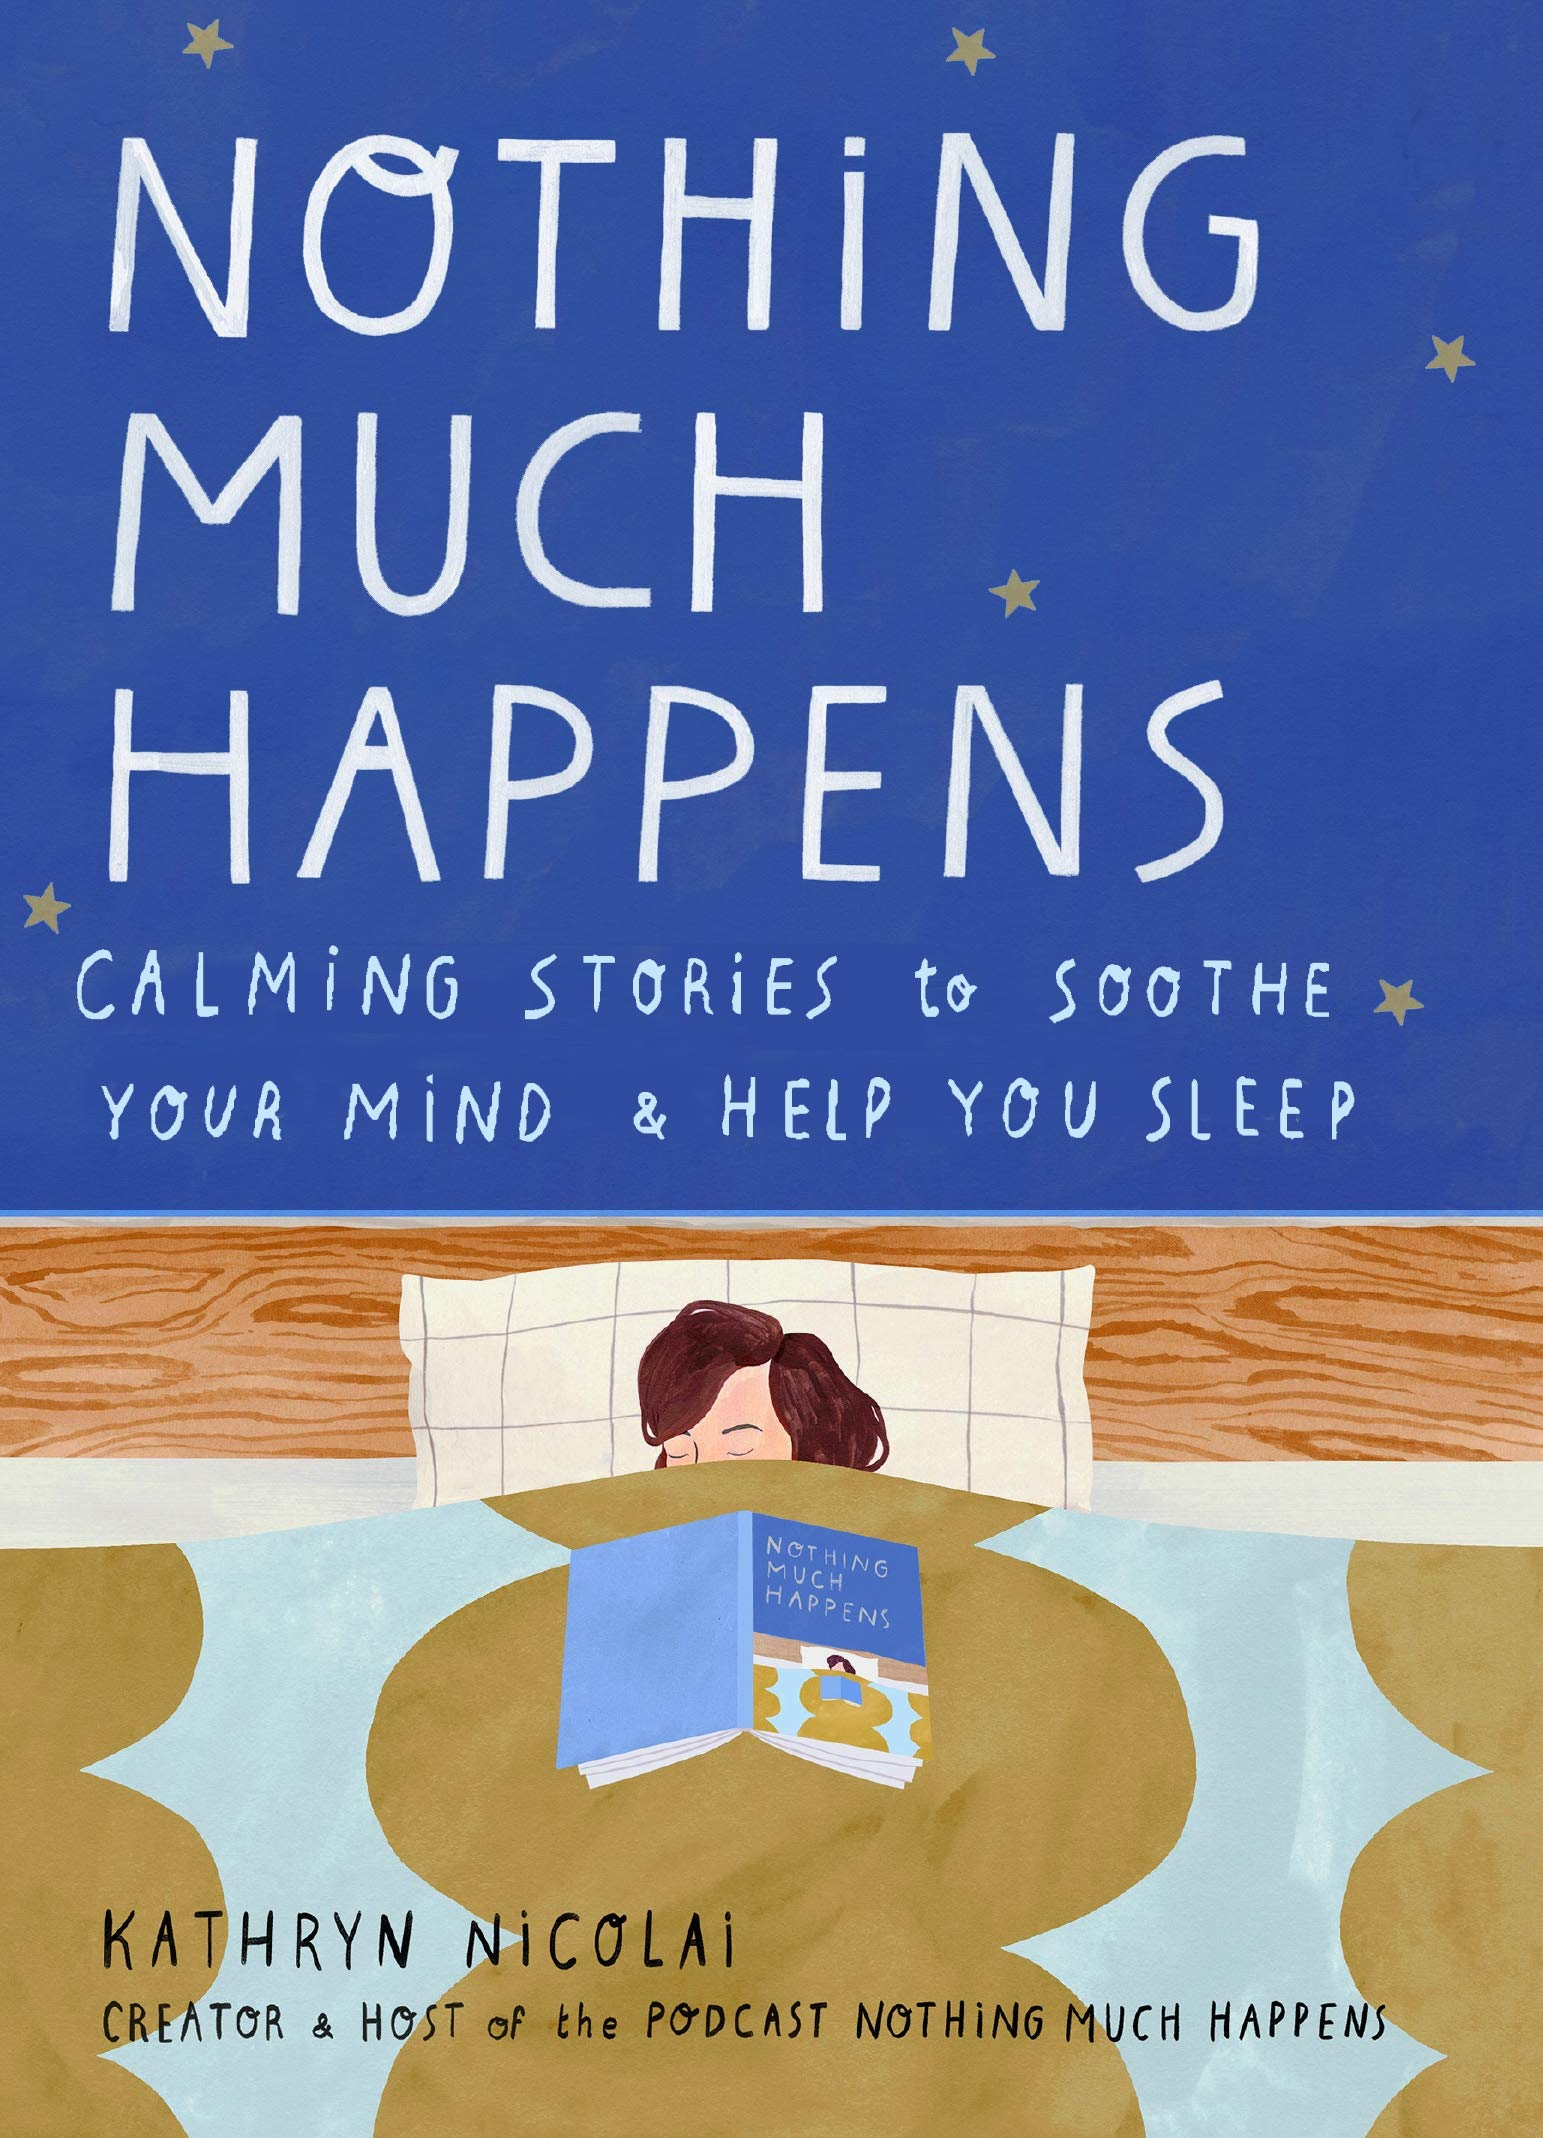 Nothing Much Happens: Calming stories to soothe your mind and help you  sleep: Amazon.co.uk: Nicolai, Kathryn: 9781911630715: Books